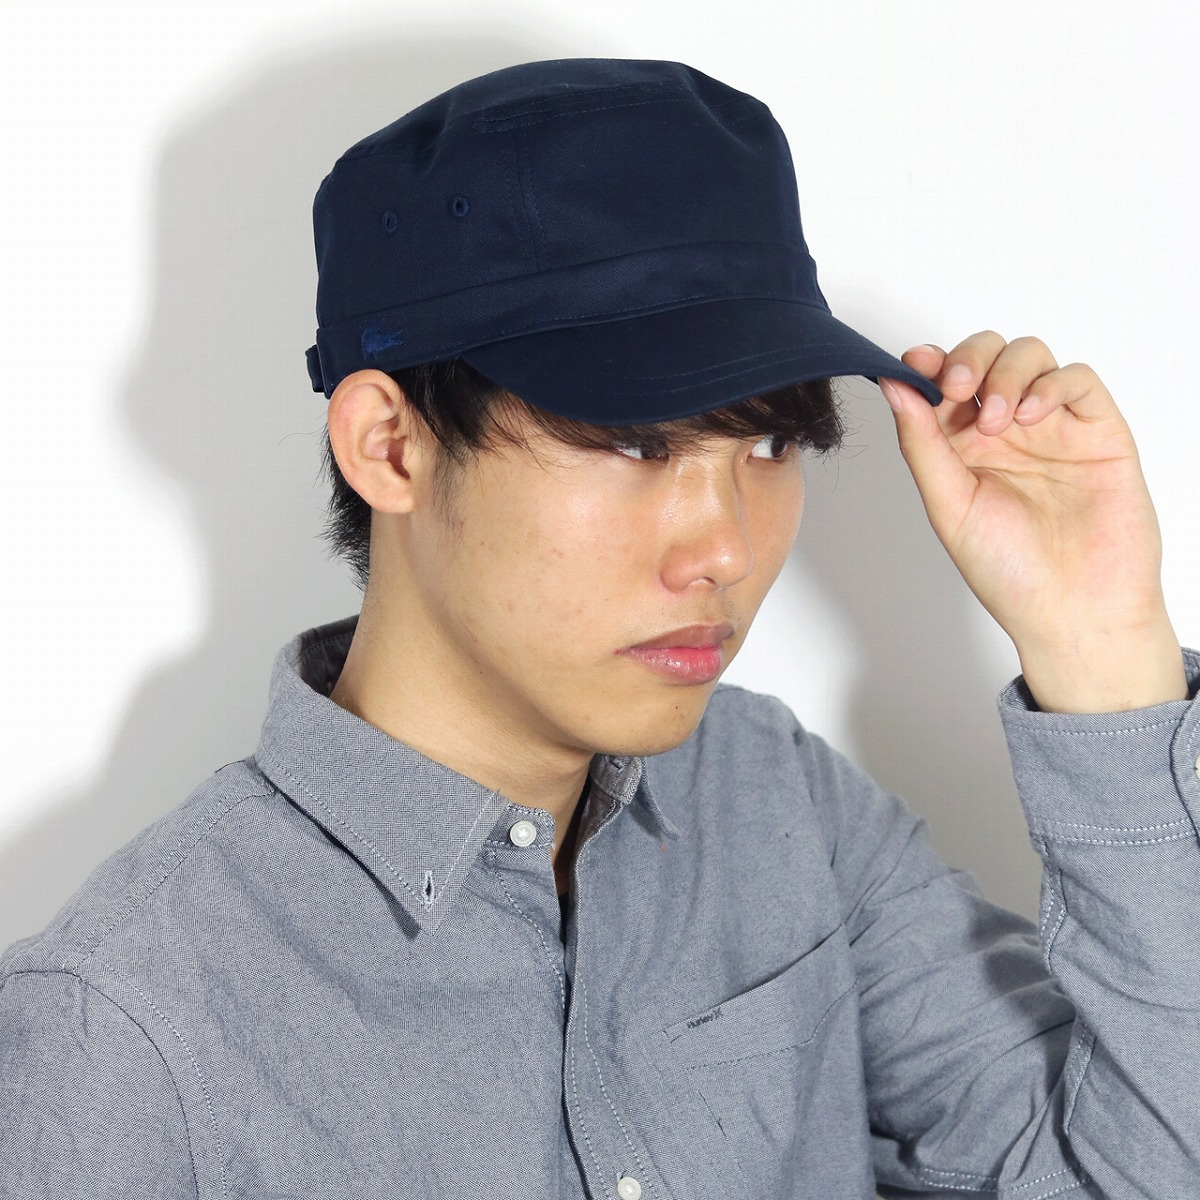 Lacoste men work cap LACOSTE CAP twill cap cotton Shin pull Lacoste Lady s hat  cap crocodile brand dark blue navy  cadet cap  Father s Day gift present  man ... 74cd94a27e1